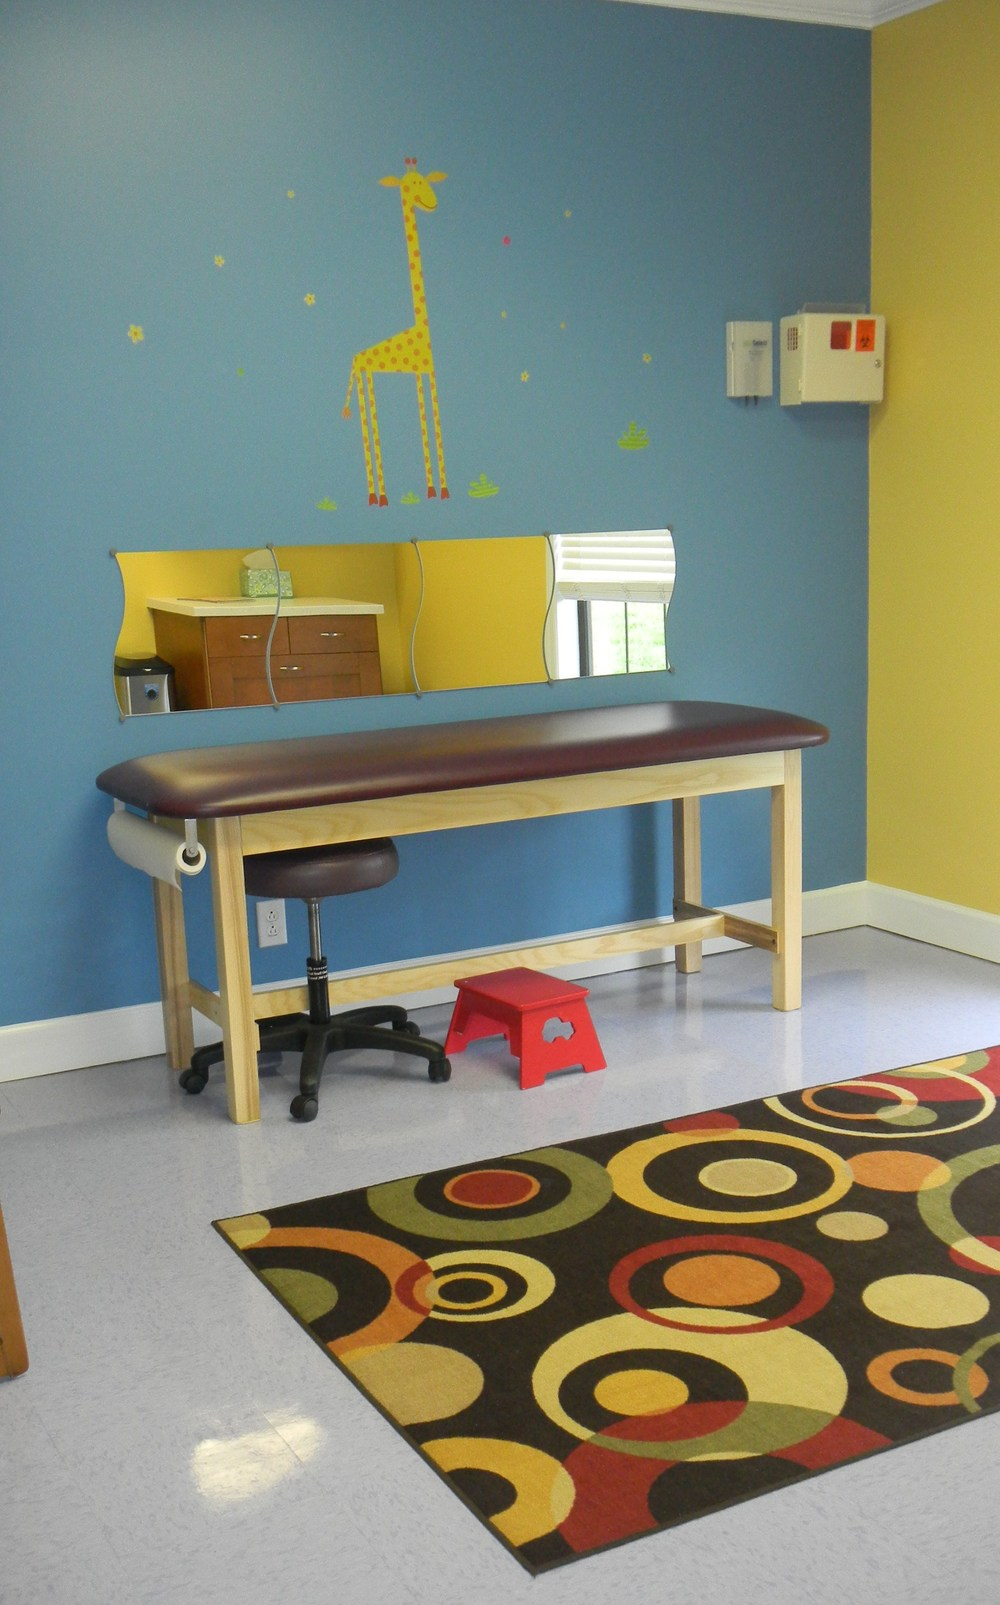 Smyrna children's waiting room